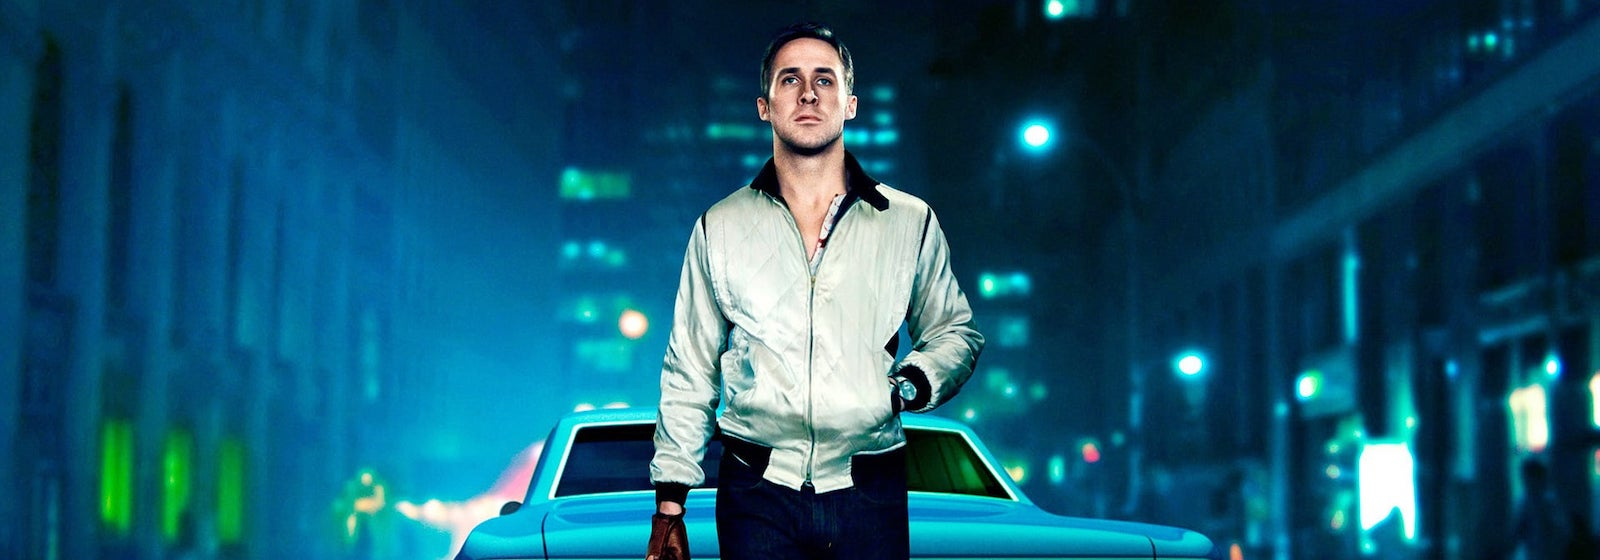 Ryan Gosling stands behind a car on a blue-lit city street in Drive